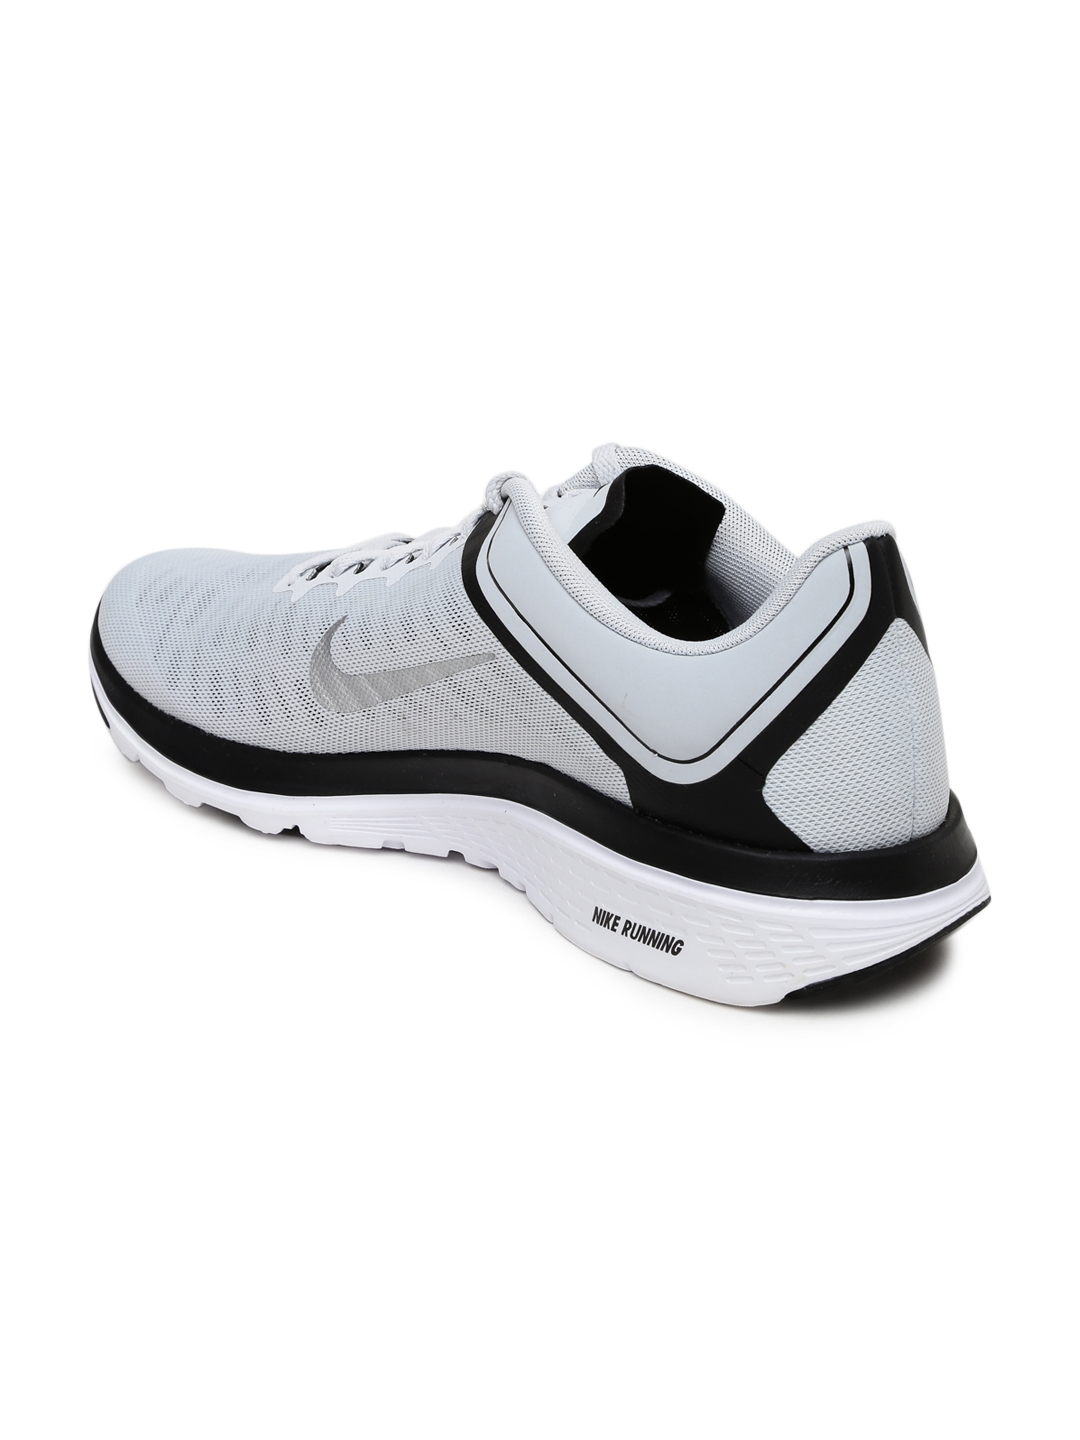 de29afd7600 Buy Nike Men Grey FS LITE RUN 4 Running Shoes - Sports Shoes for Men  1547977